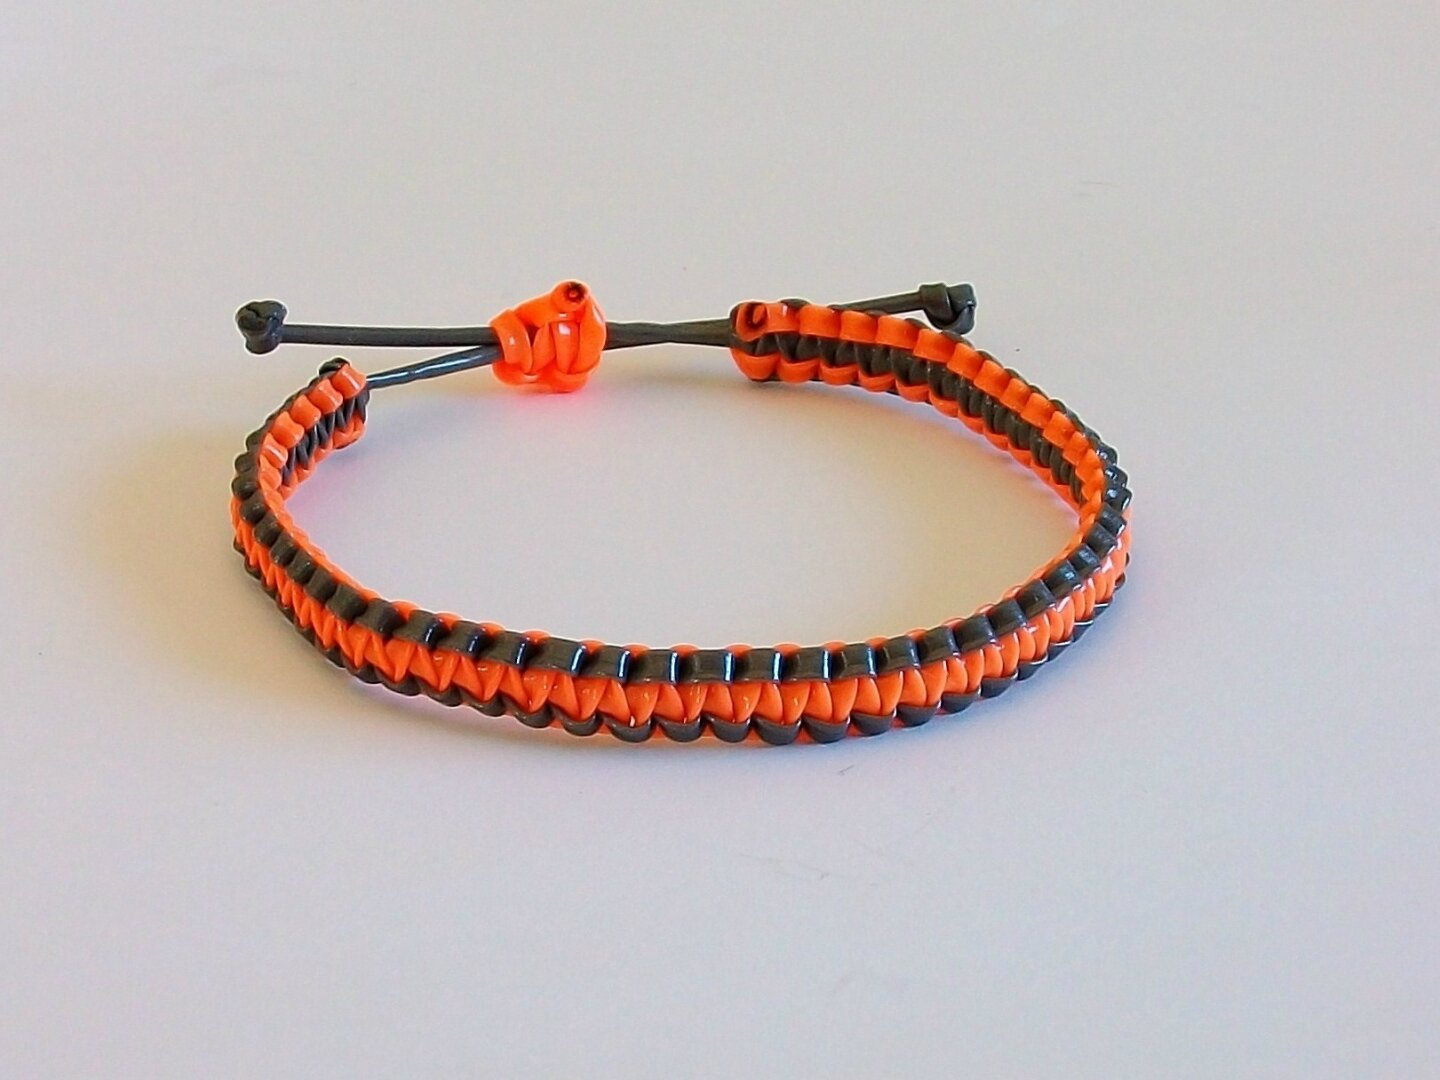 scoubidou bracelet orange et noir 2 fils super scoubidou. Black Bedroom Furniture Sets. Home Design Ideas